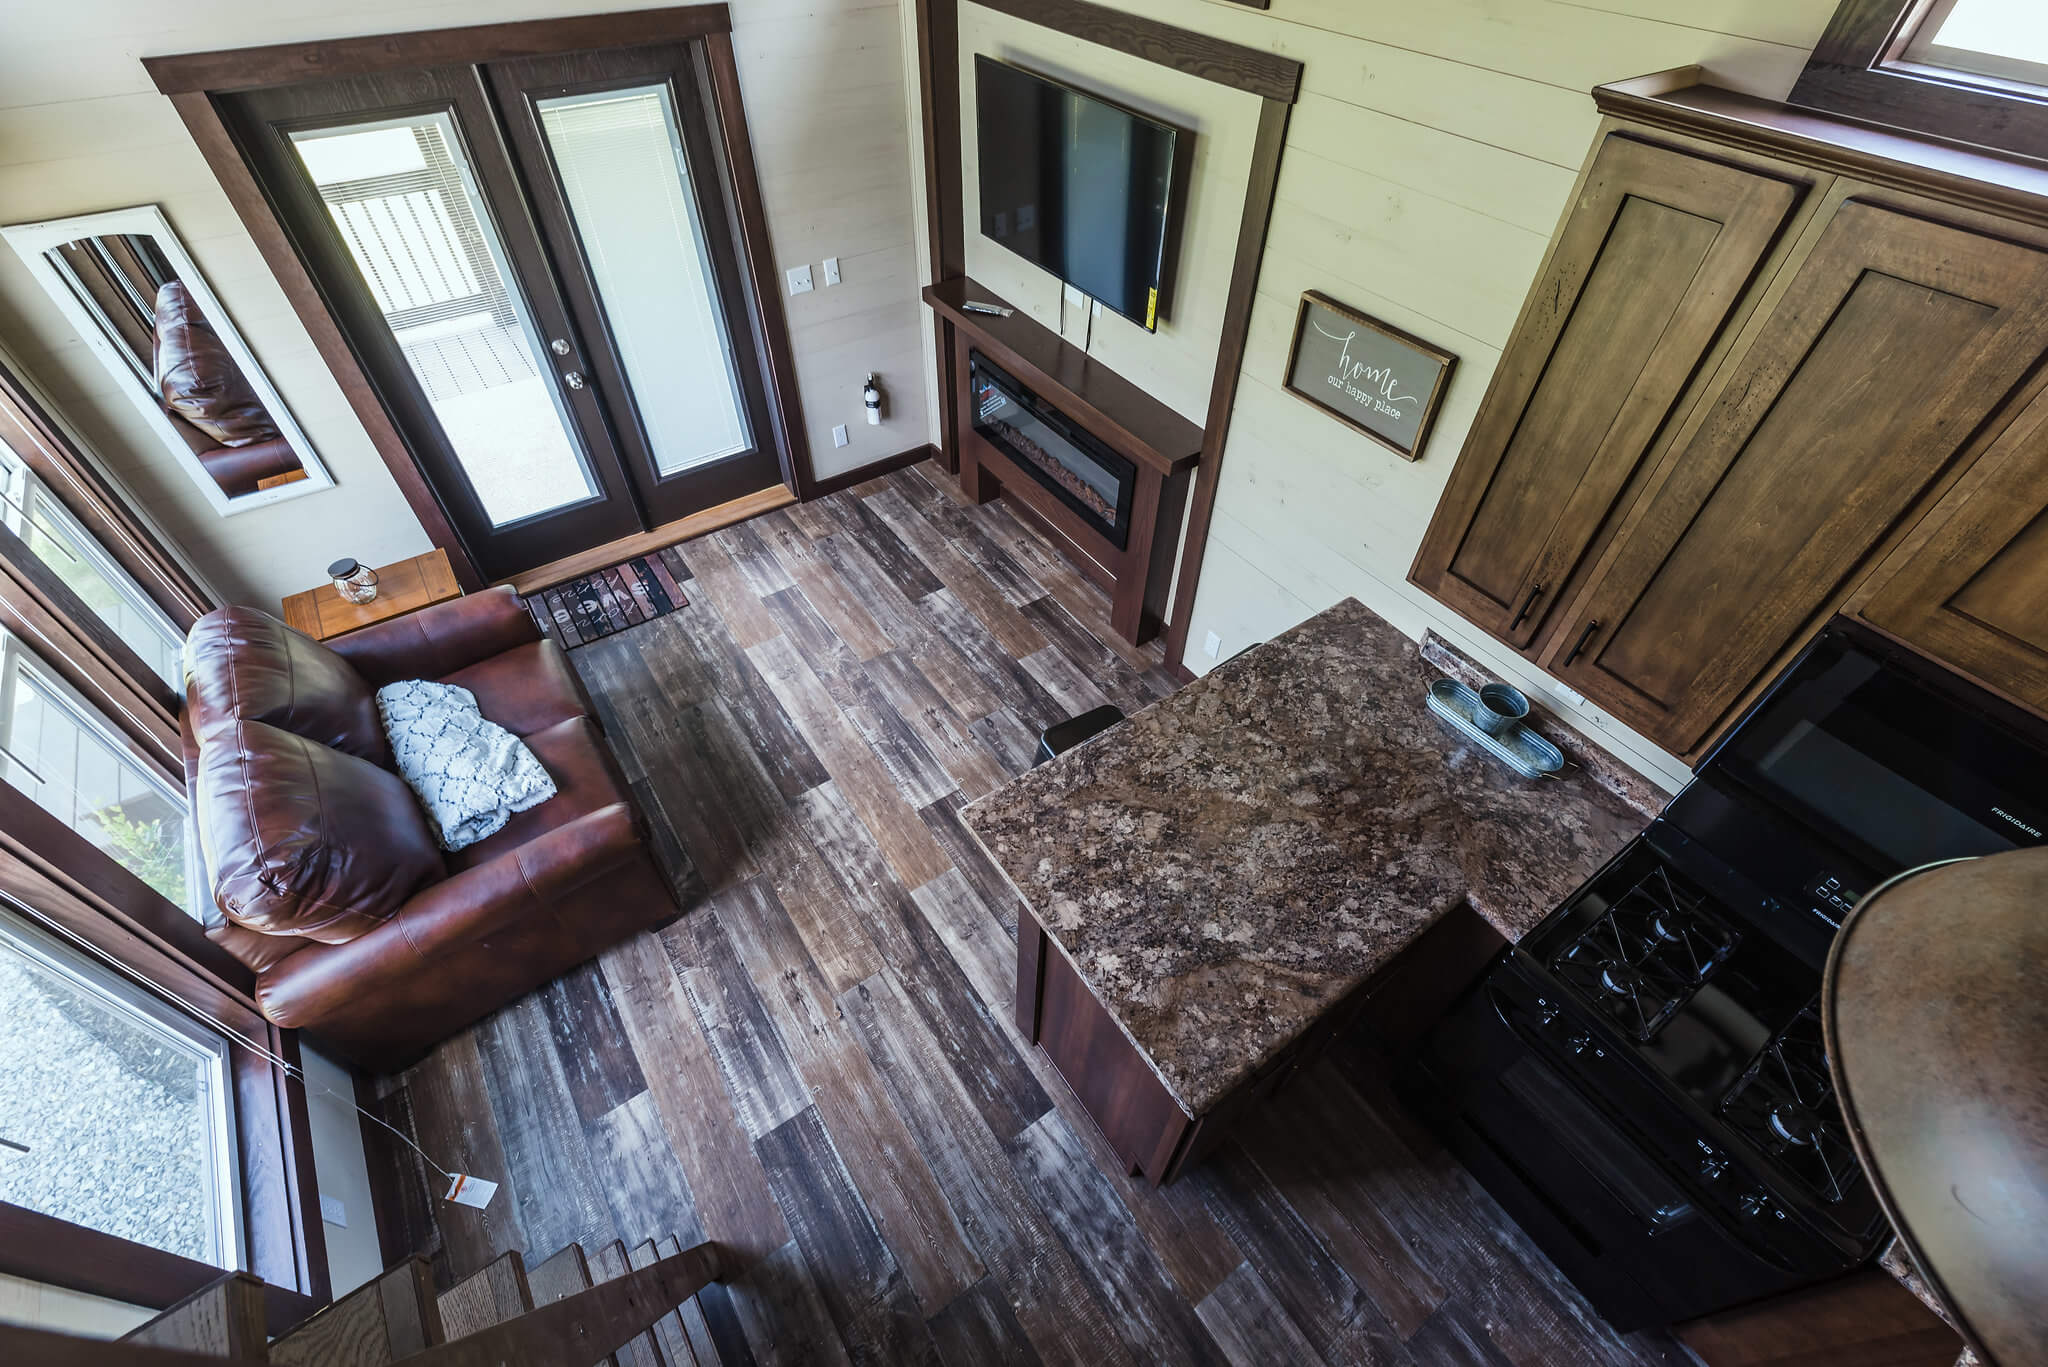 view of tiny home interior